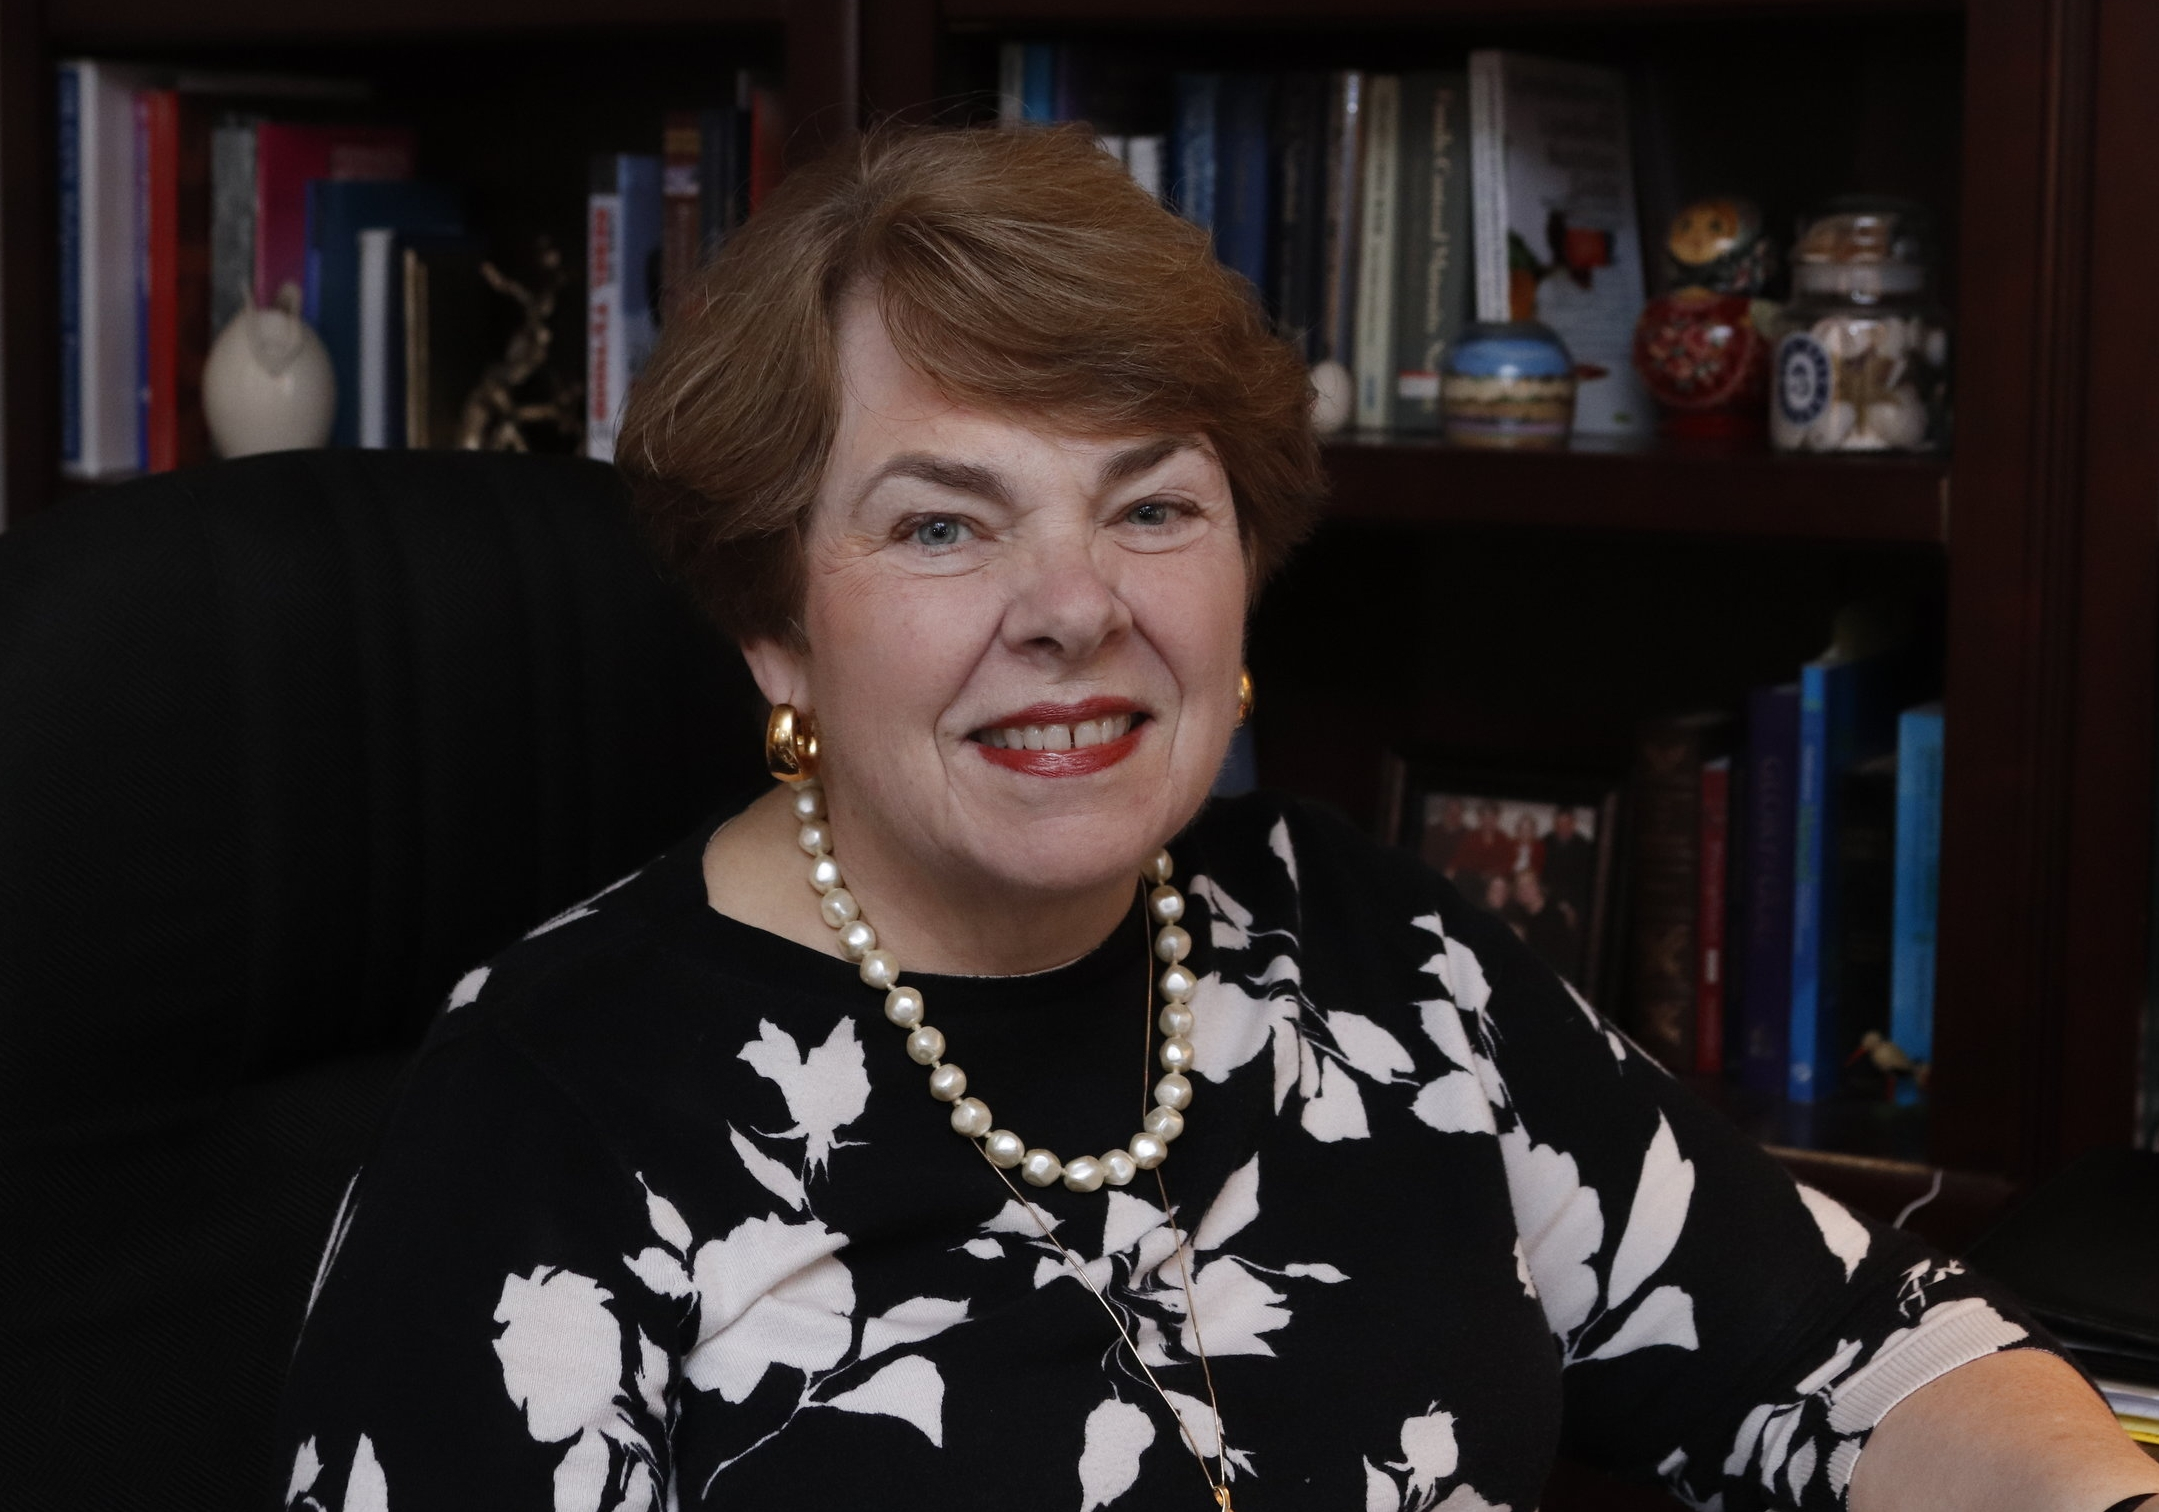 Carolyn L. Gegor, CNM, MS, FACNM,has had an extensive career in obstetric and gynecologic ultrasound. - For many years, she has lectured at ACNM meetings and taught hands-on courses for midwives.